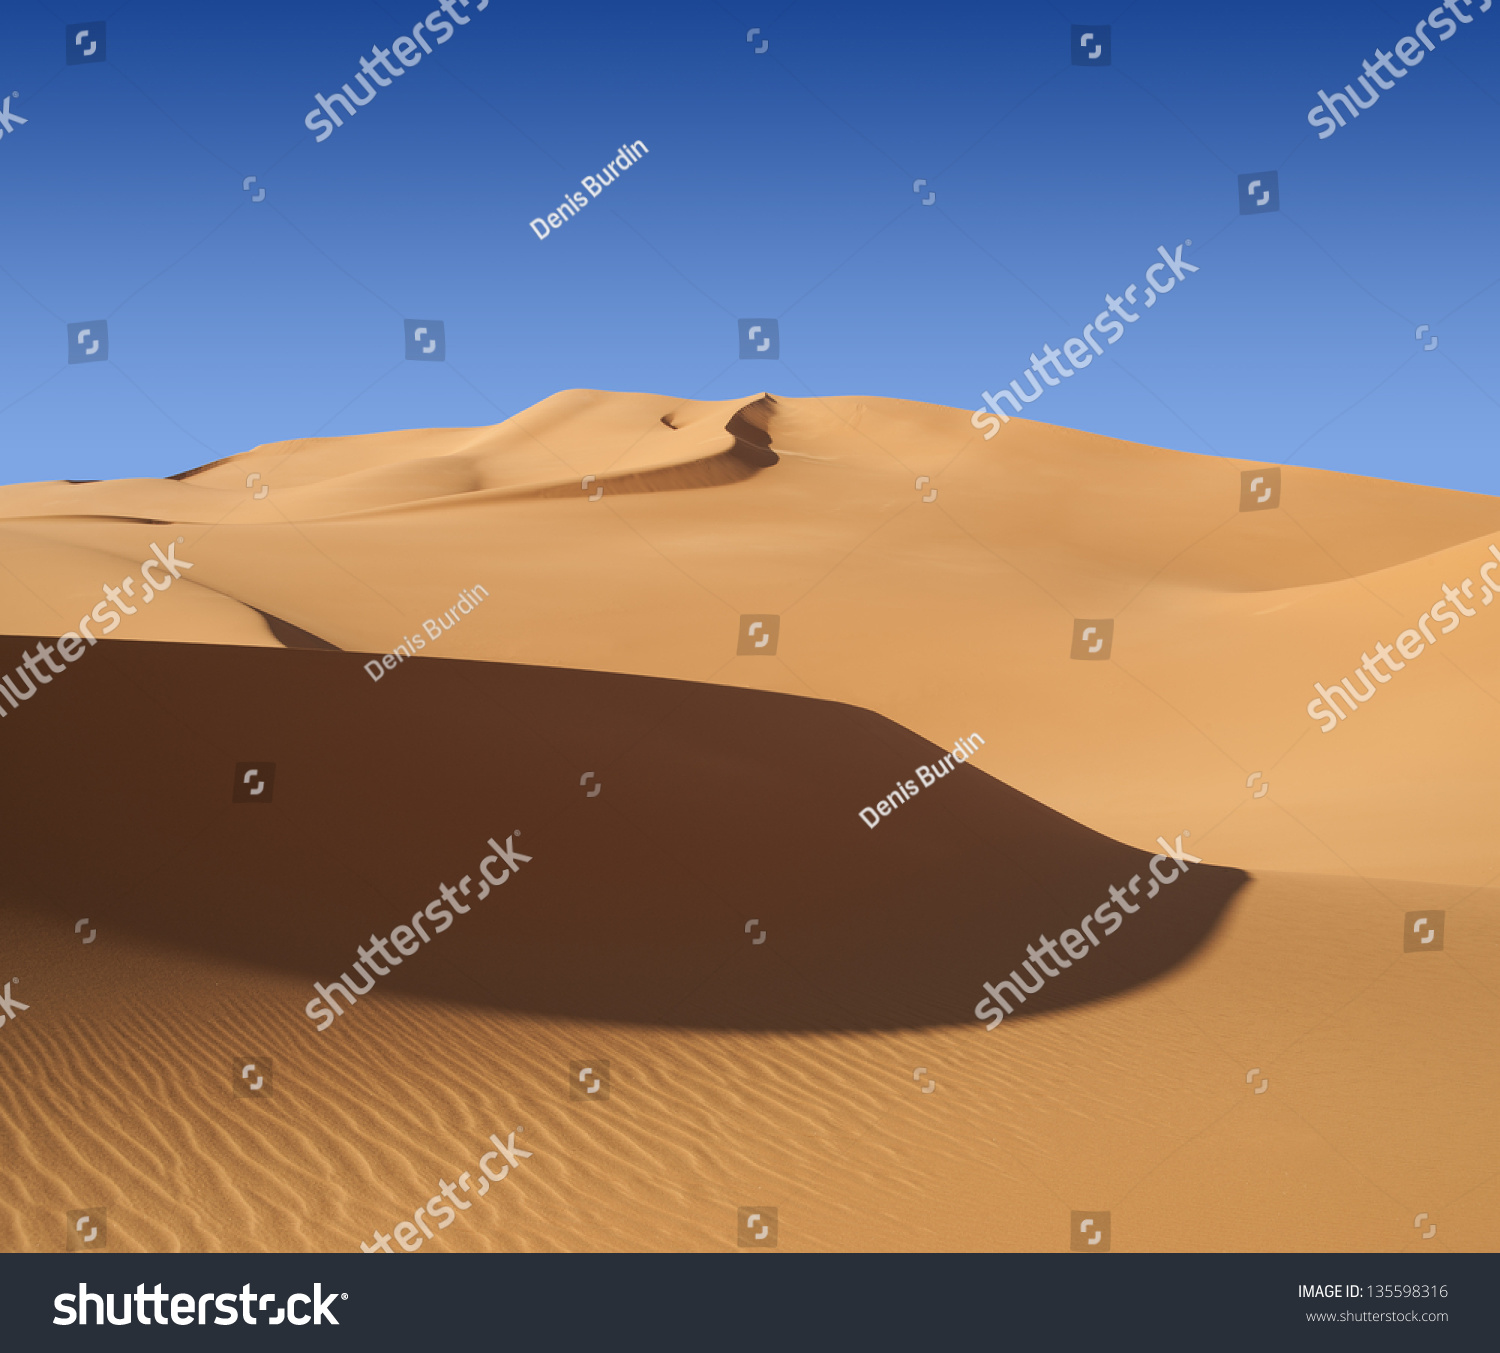 Image of: Desert Sahara The Libyan Desert Fantastic Place For Travelers And Photographers Beautiful Structure Of Dense Shutterstock Libyan Desert Fantastic Place Travelers Photographers Stock Photo